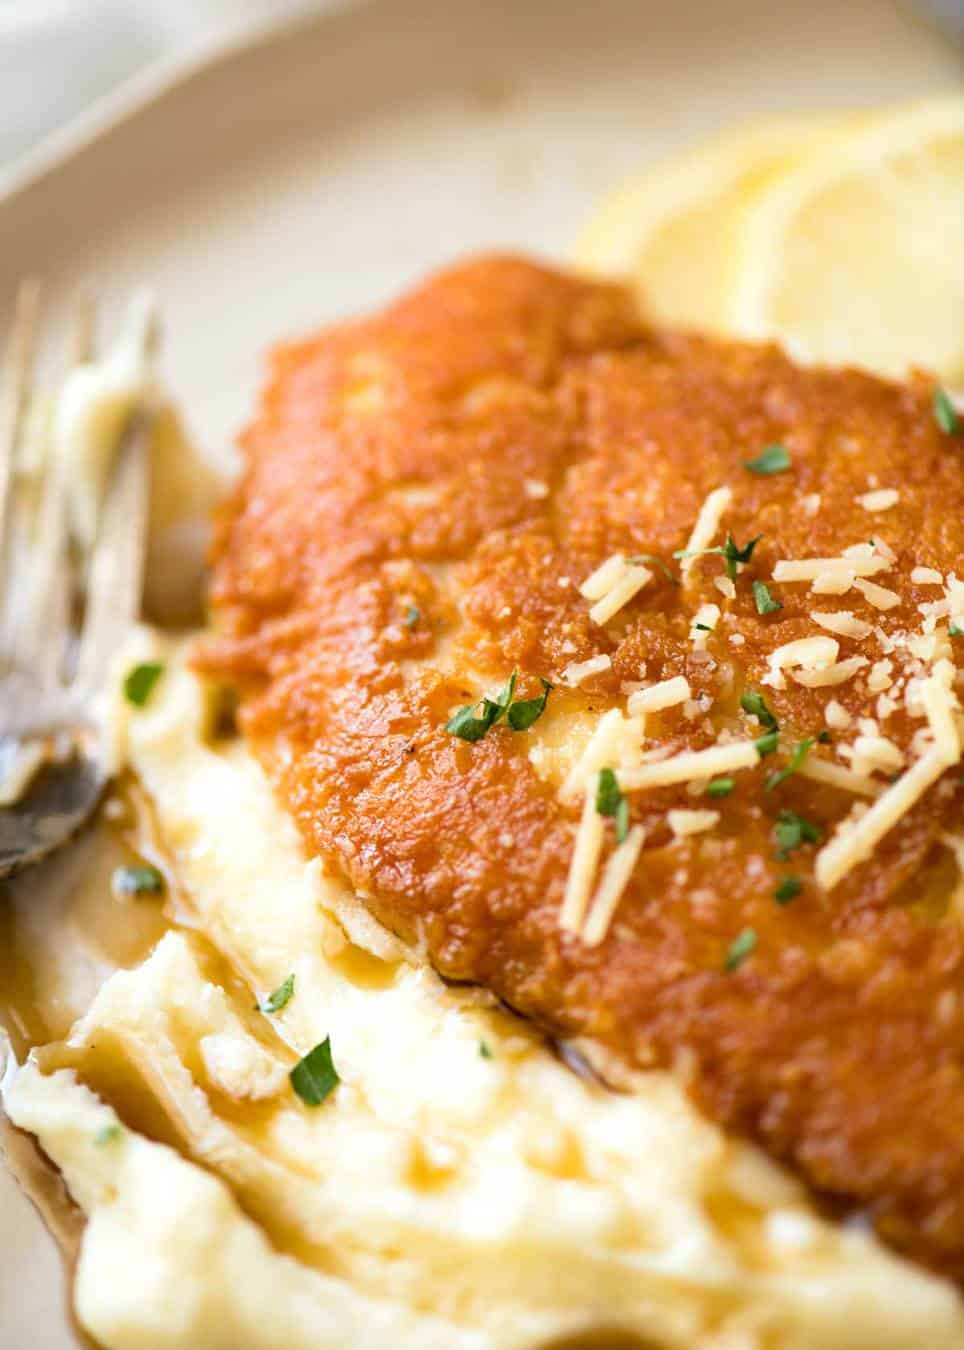 Ultra Crispy Parmesan Crusted Chicken Breast with silky Cauliflower Mash with Browned Butter.